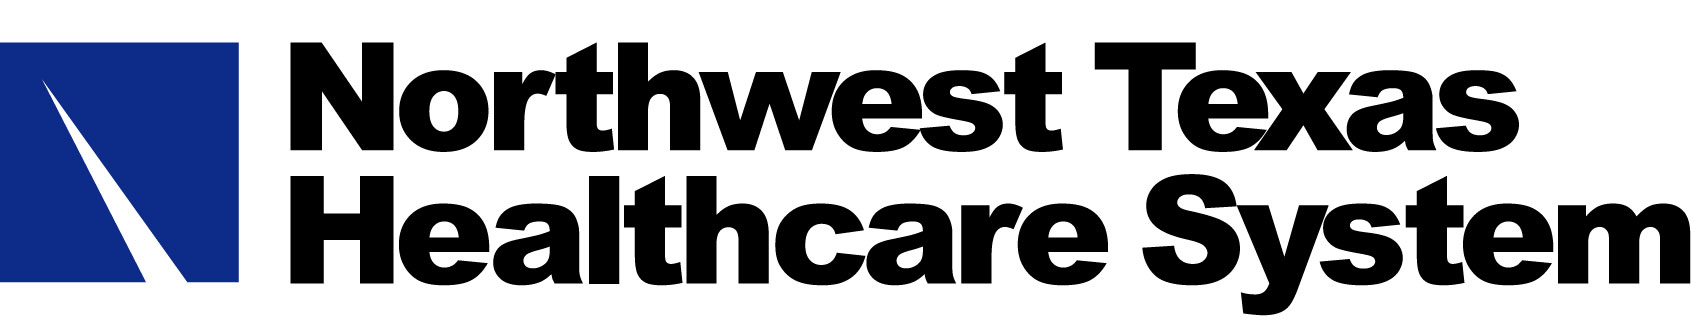 Northwest Texas Healthcare System logo